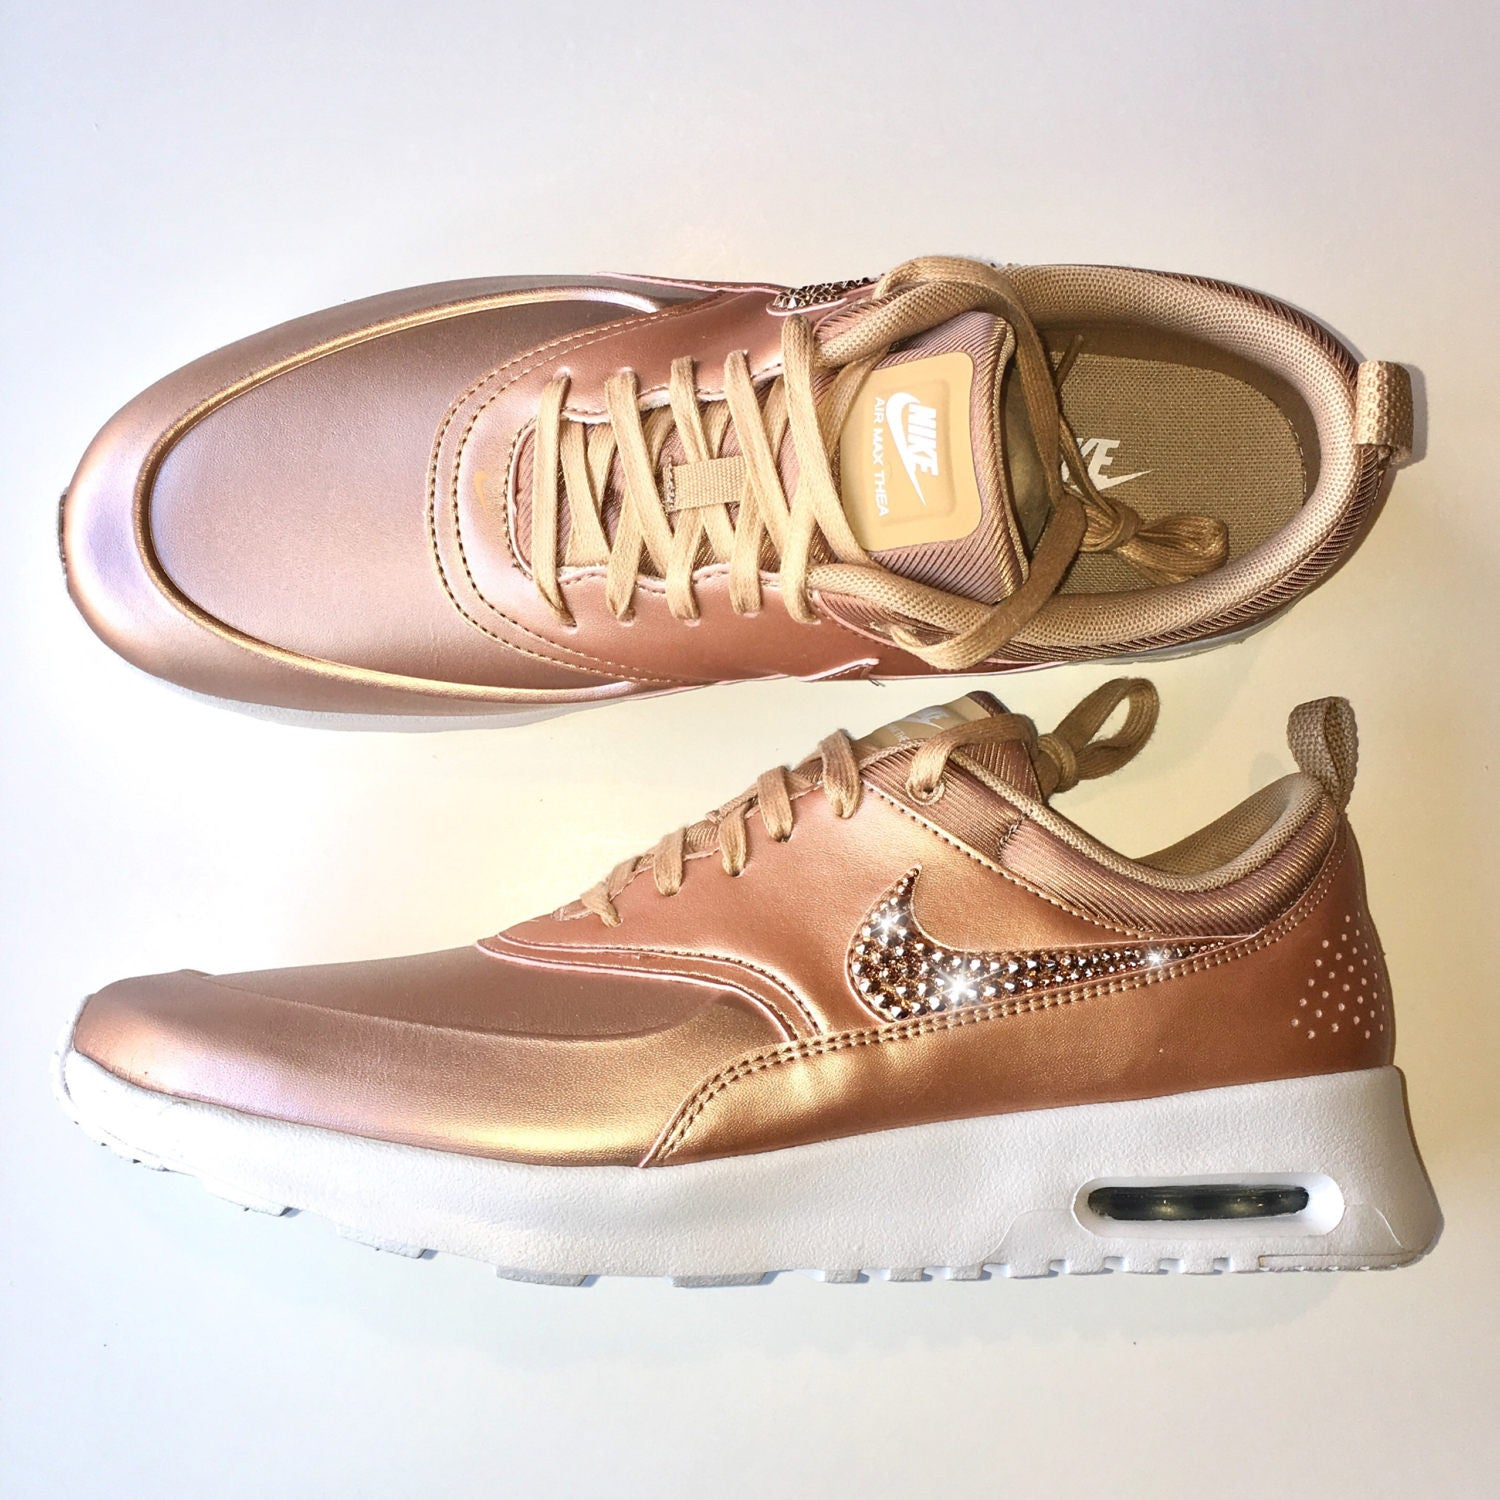 check out ecd3b 6bf90 ROSE GOLD Bling Nike Air Max Thea Metallic SE Shoes with Swarovski Crystals    Bedazzled with ...